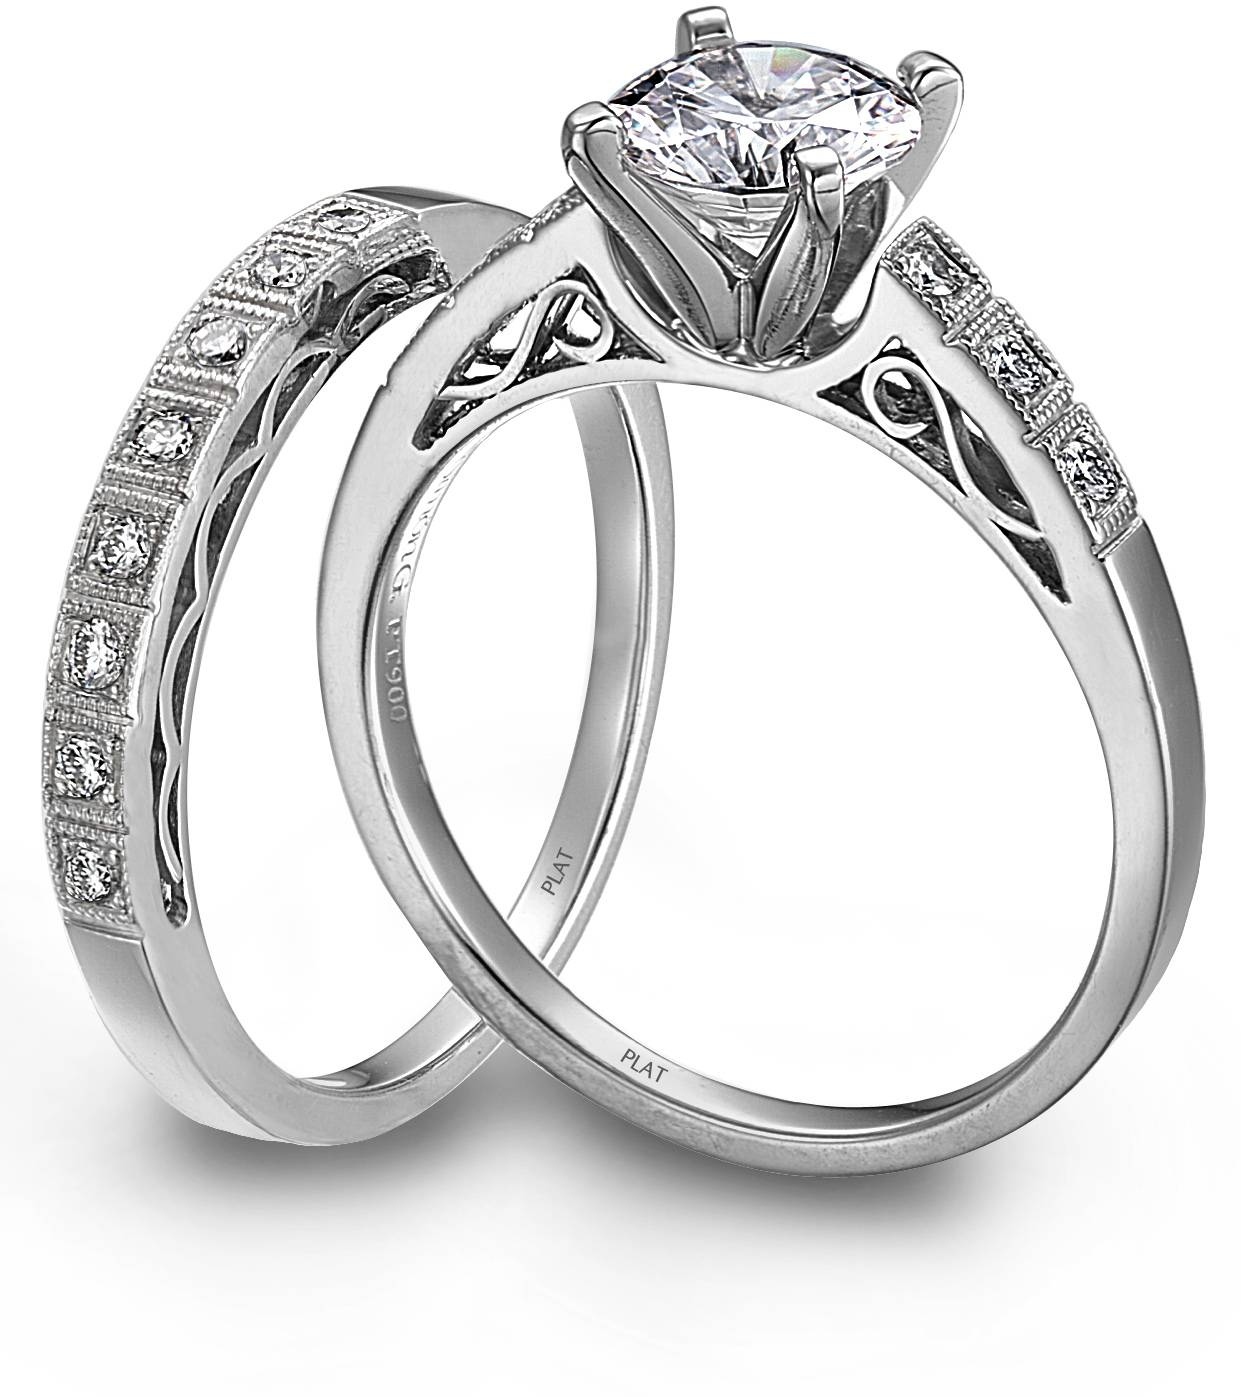 Jewelry Store Losed Woman's Wedding Ring | Bridal Gowns In Discount Within Jewelry Stores Wedding Rings (View 11 of 15)